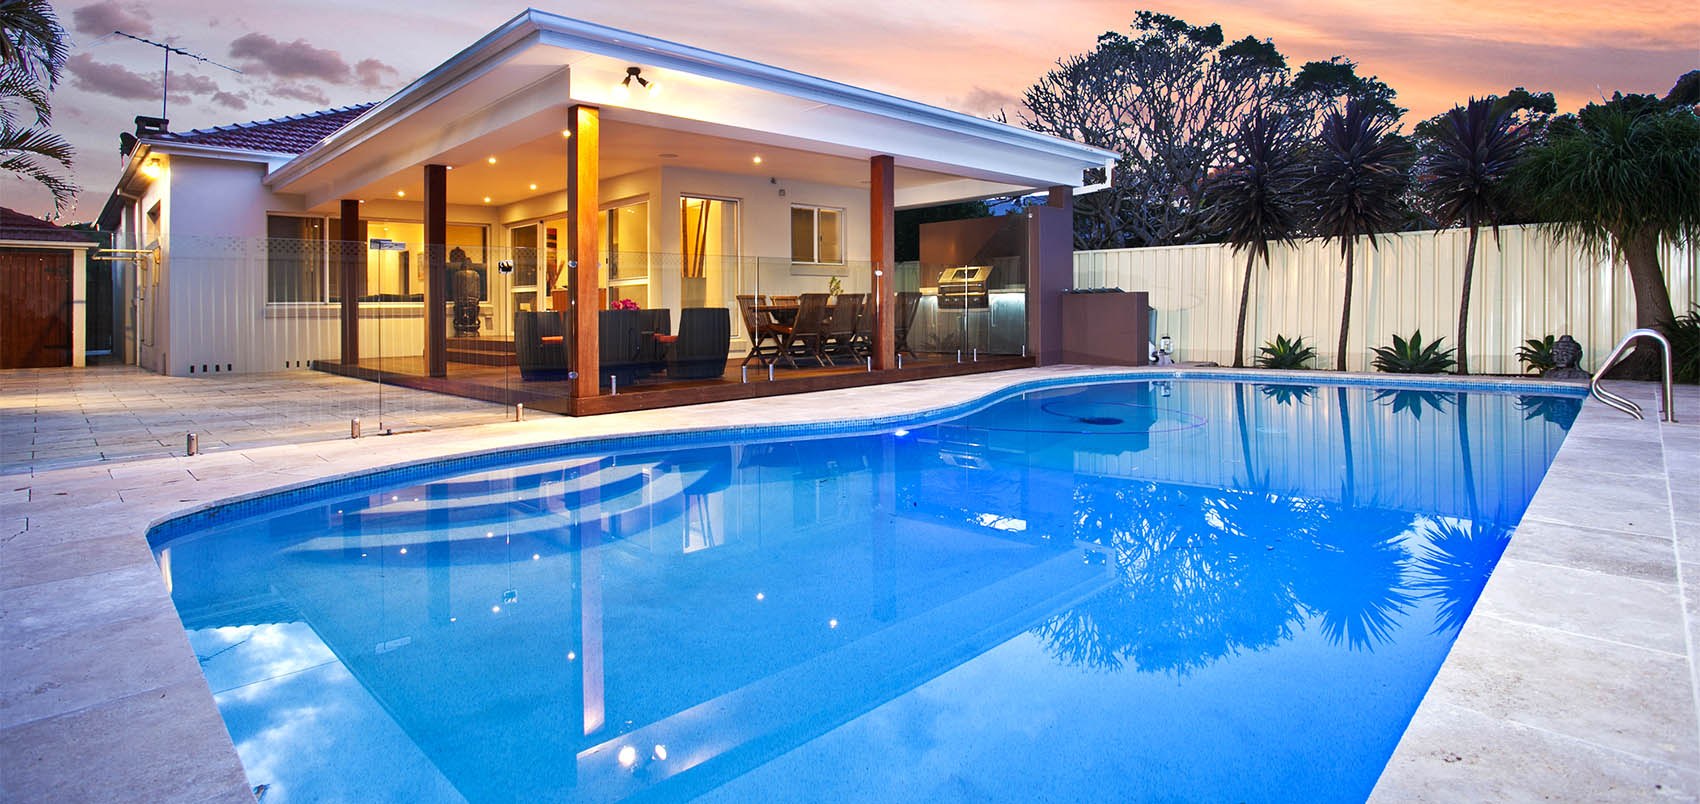 Tranquil Swimming Pool At A Luxury Property Custom Pool